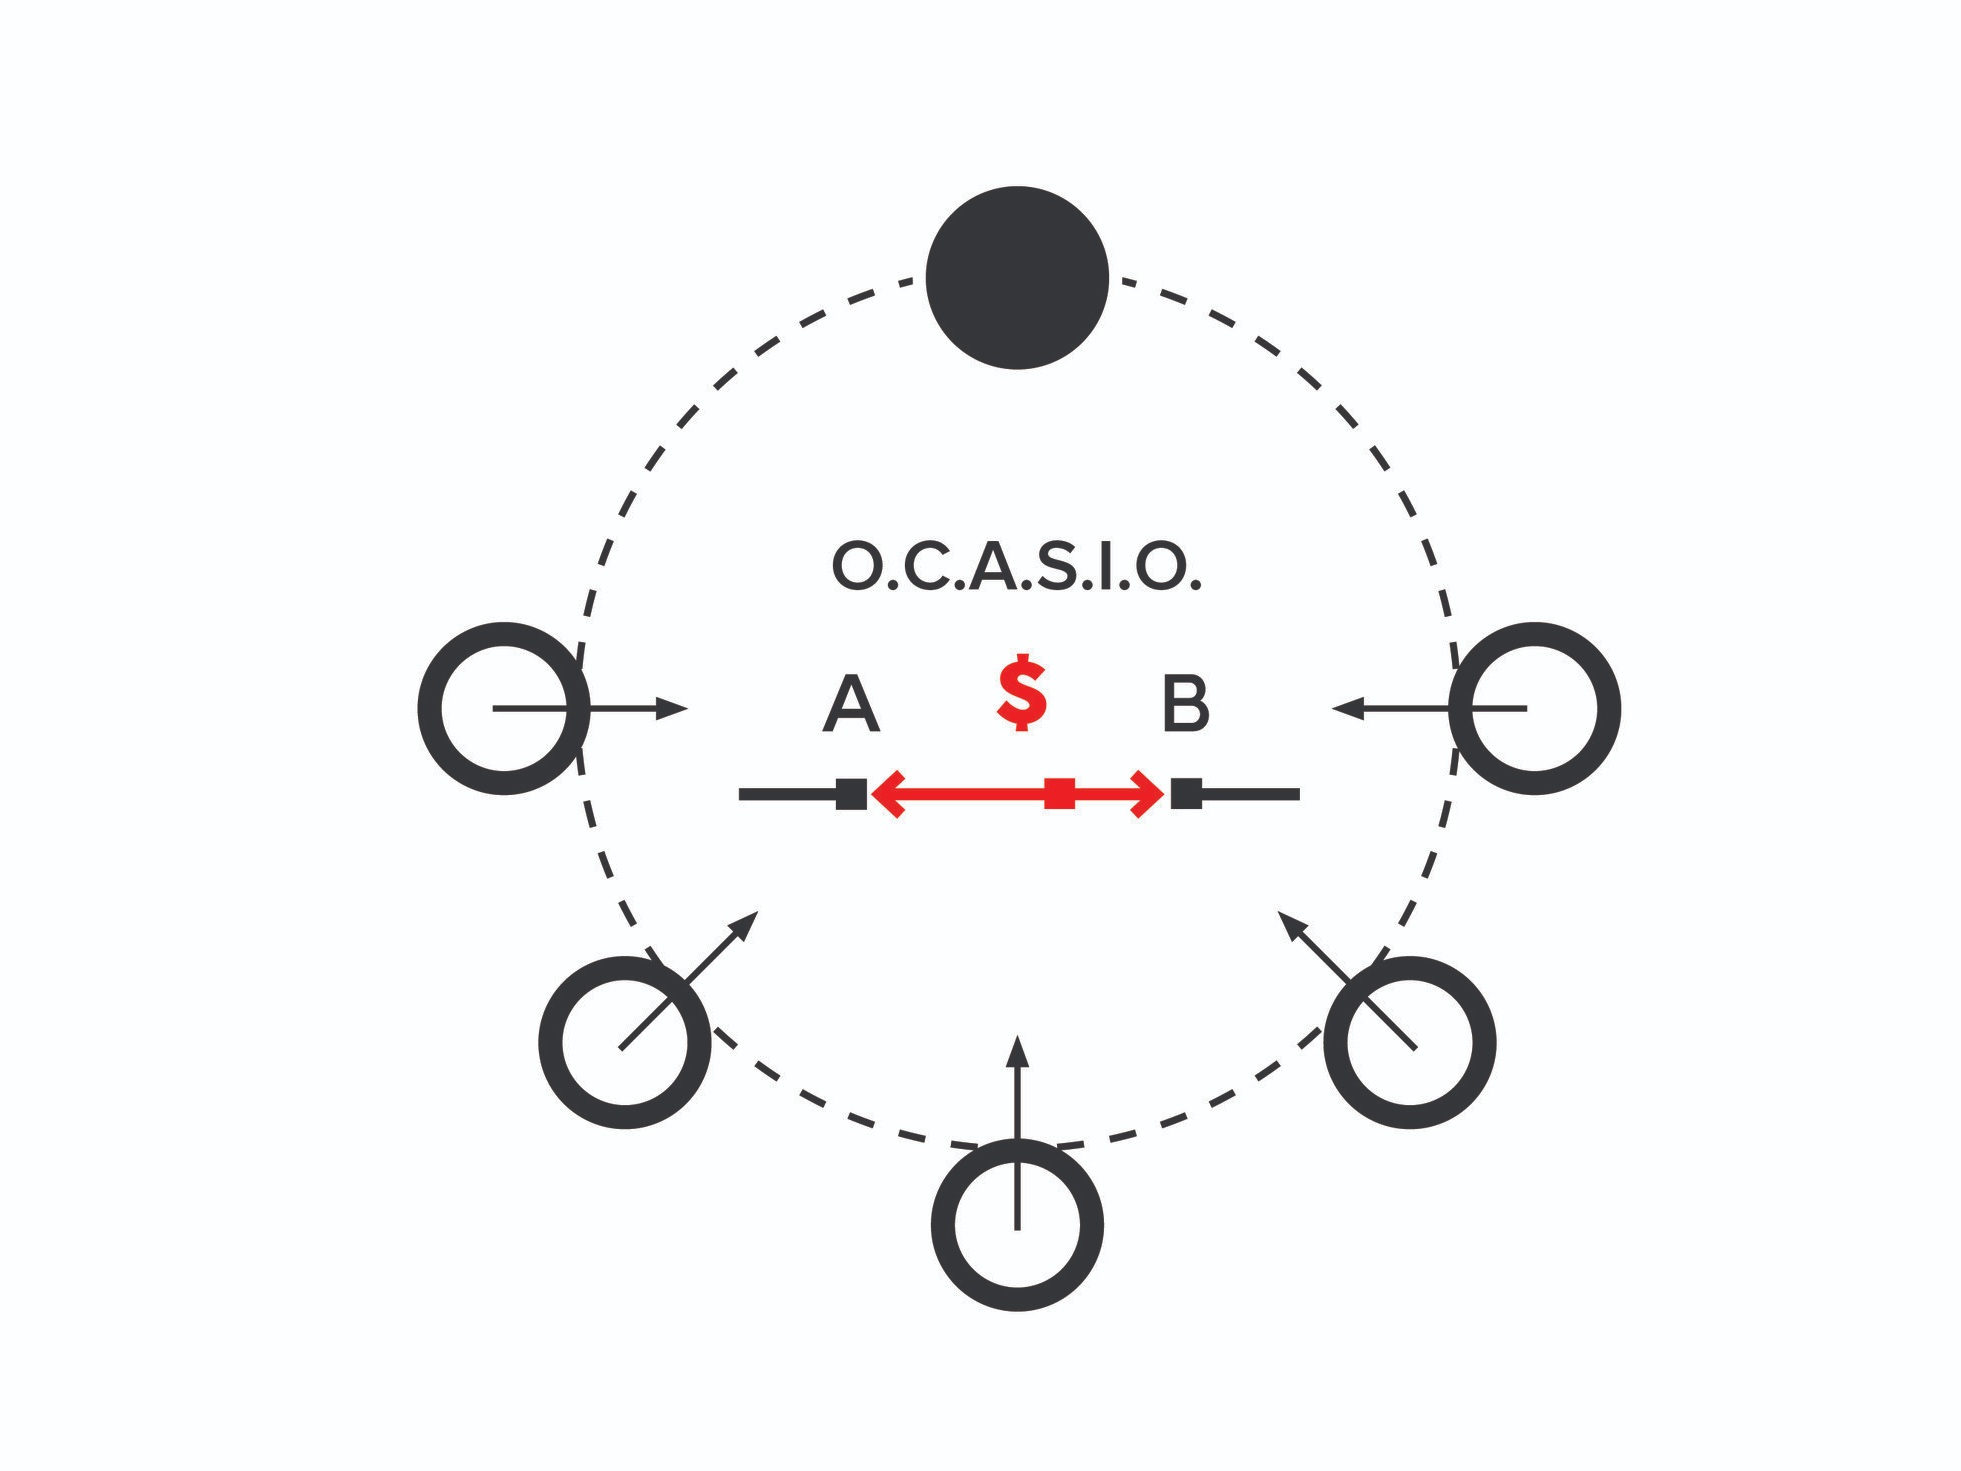 OCASIO - A process, a formula and a structured strategic conversation for key decision makers to determine the Optimal Capital Allocation to Strategic Innovation Options and activities.Learn more…